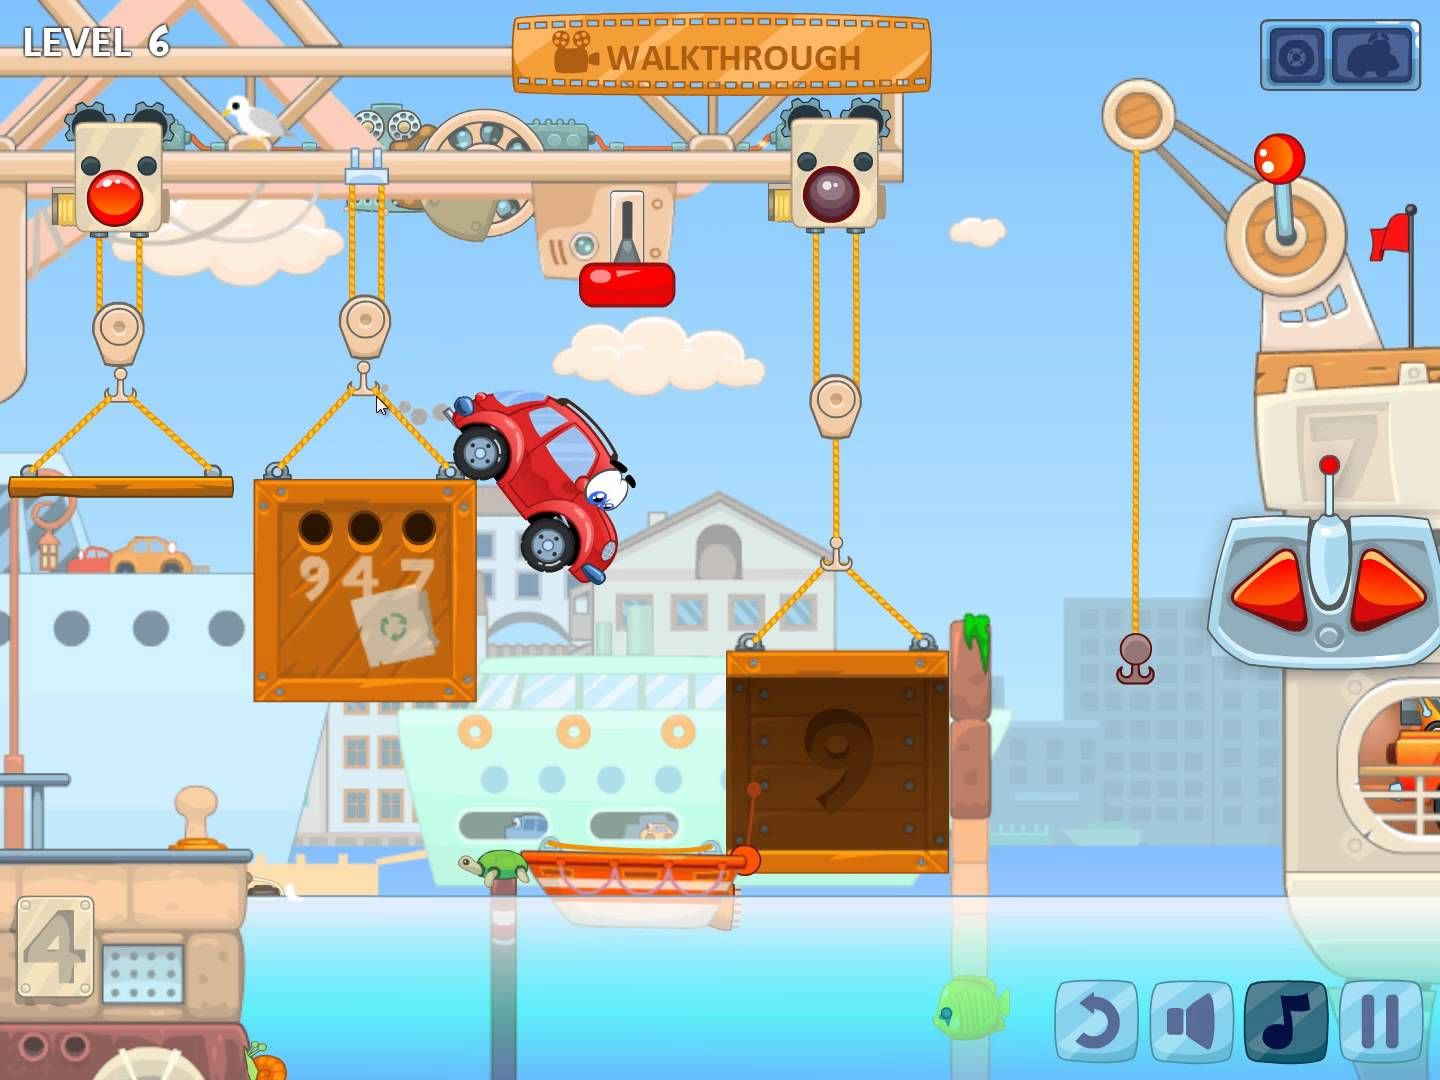 cool math games for kids how2becool (With images) Fun